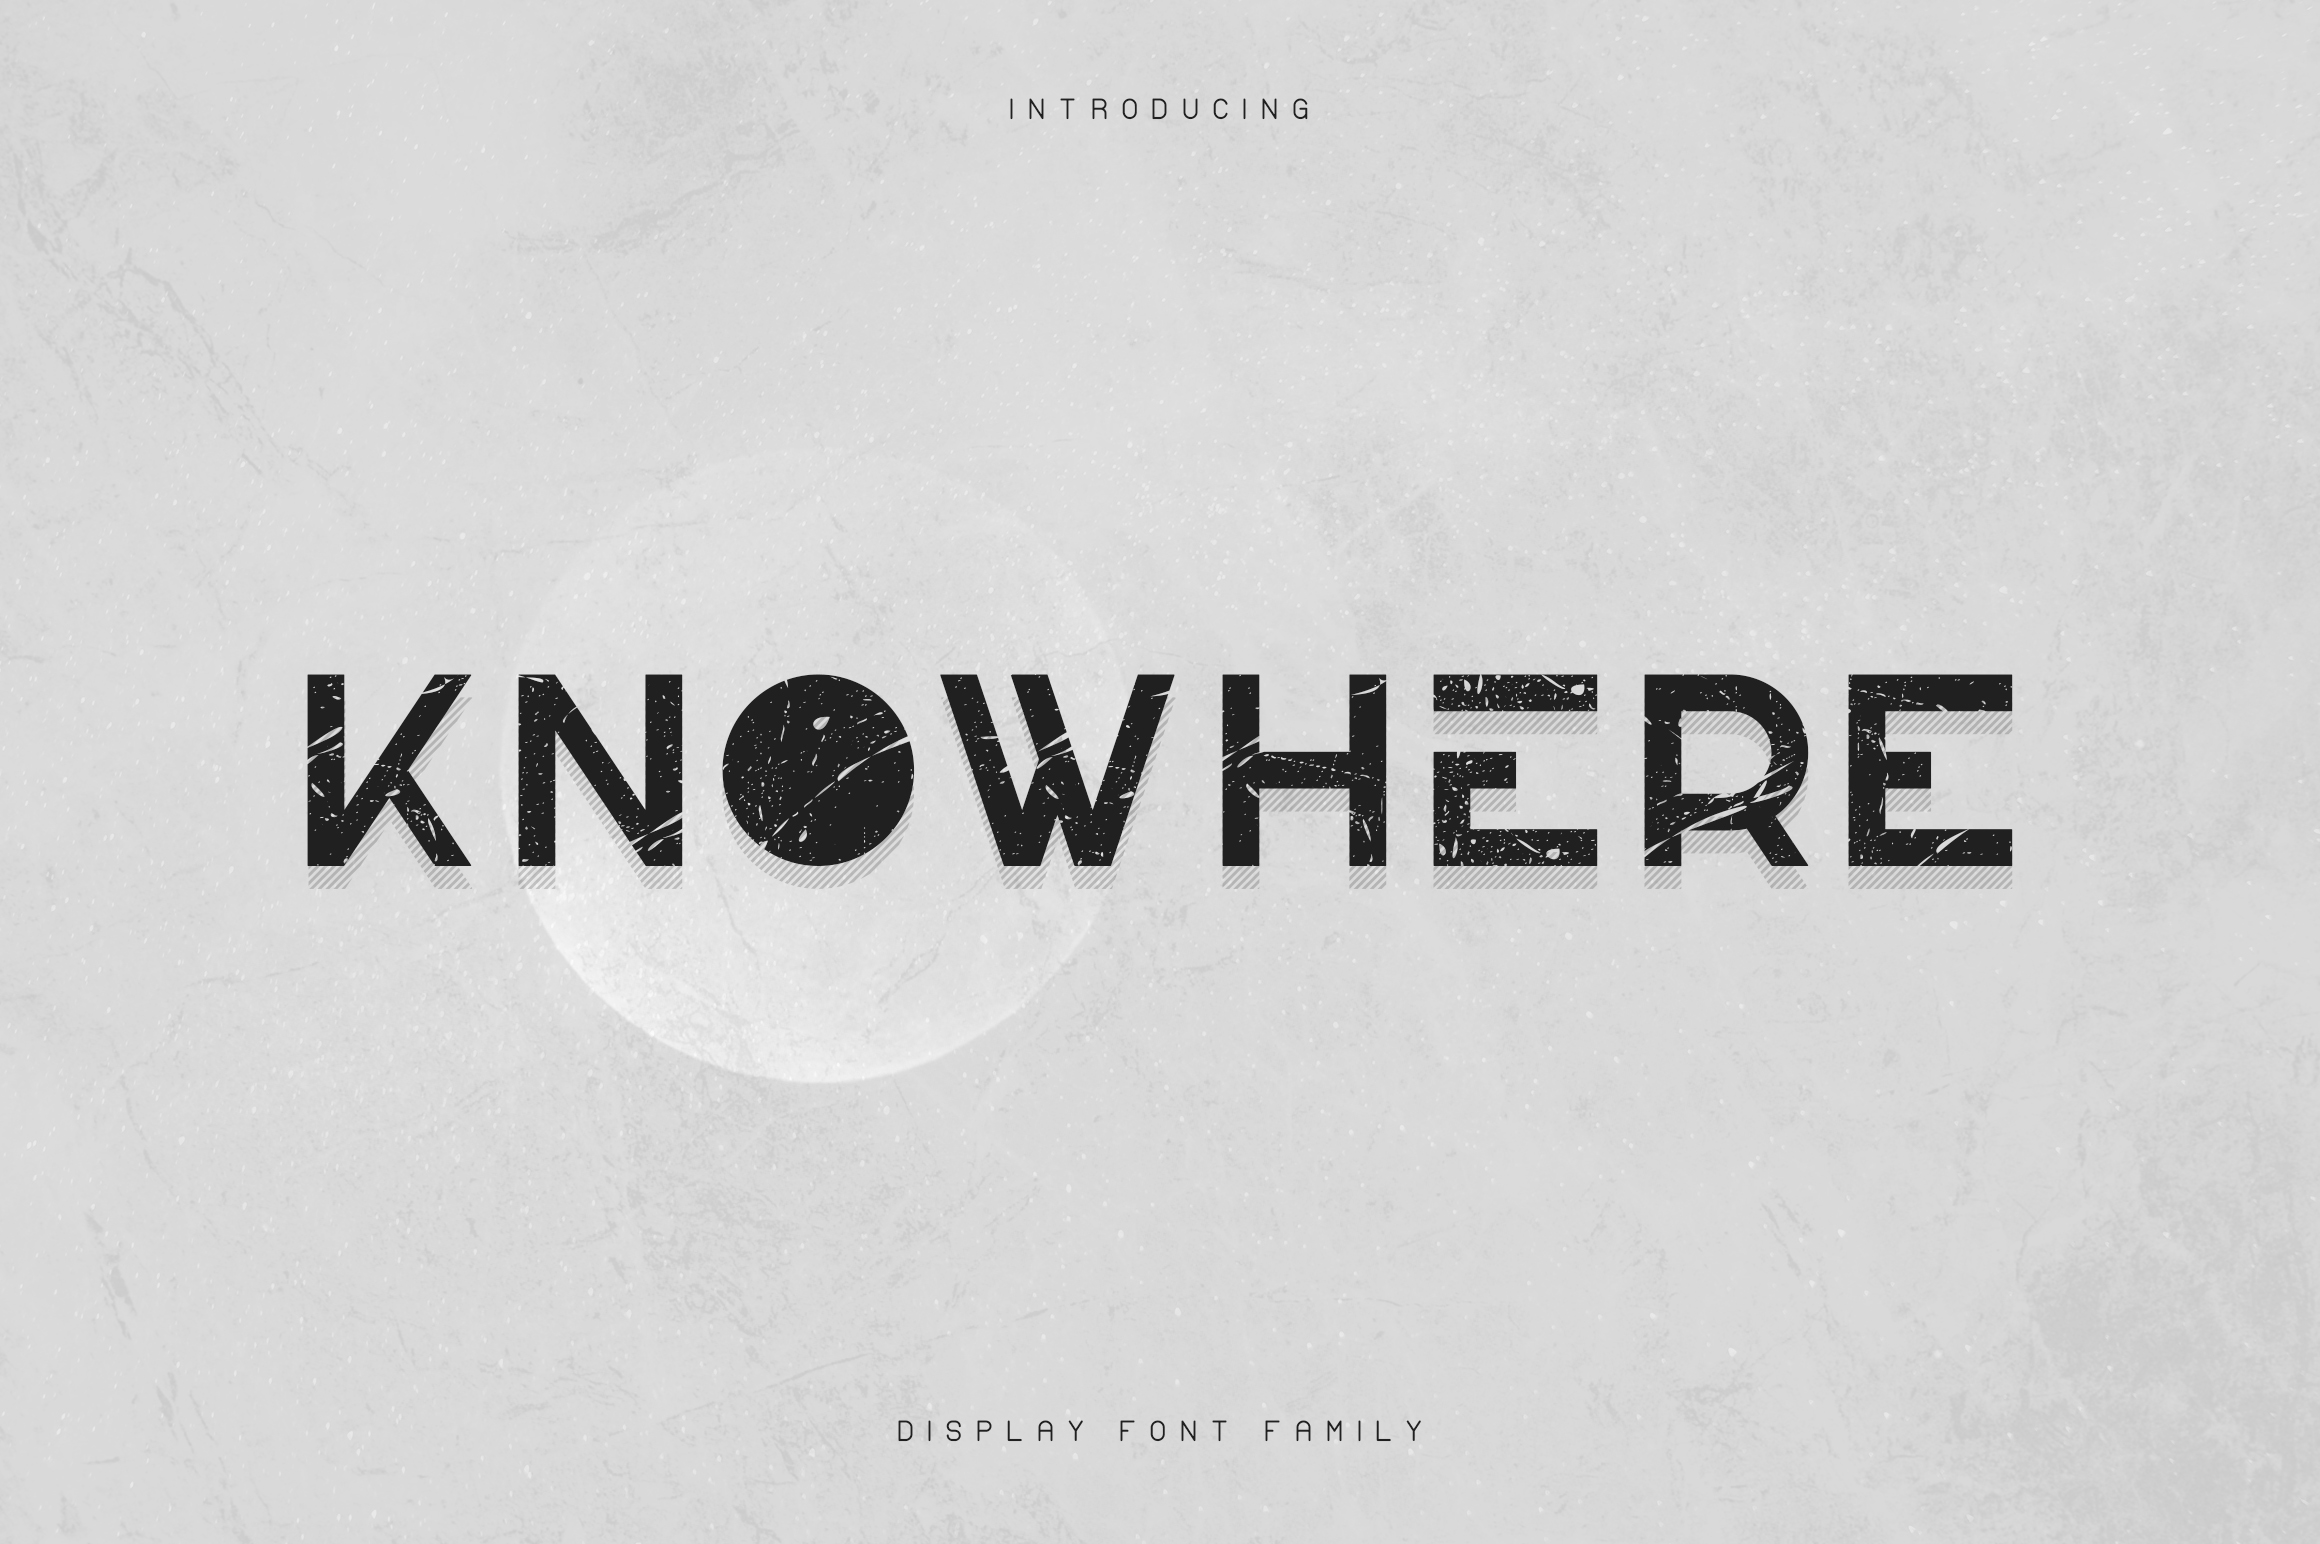 Knowhere - Display font family example image 1